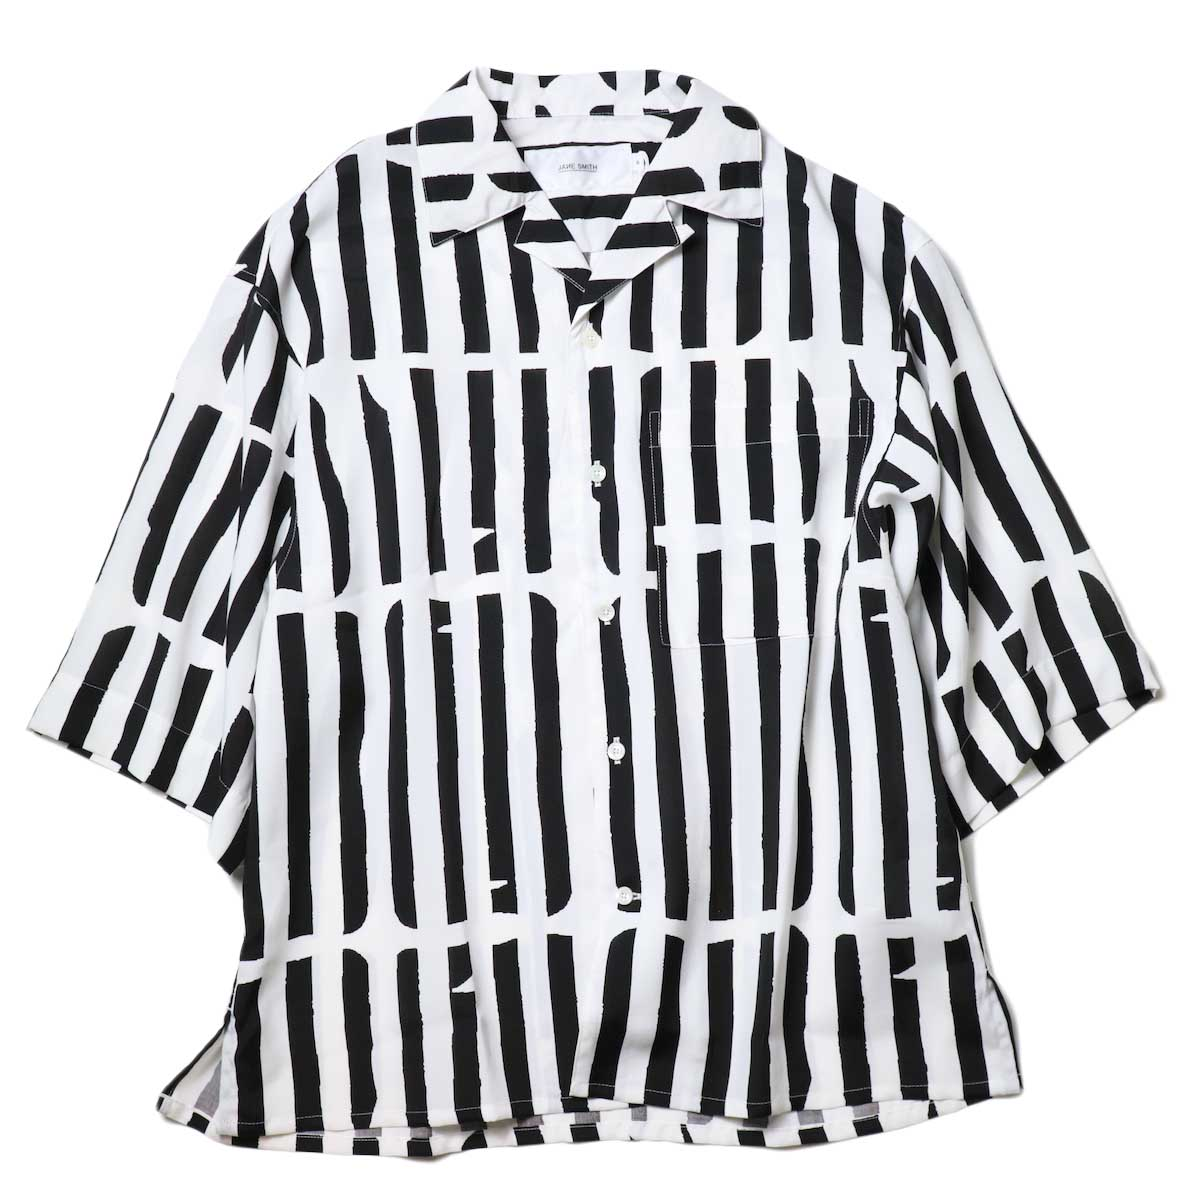 JANE SMITH / OPEN COLLAR SHIRTS S/S (White Black)